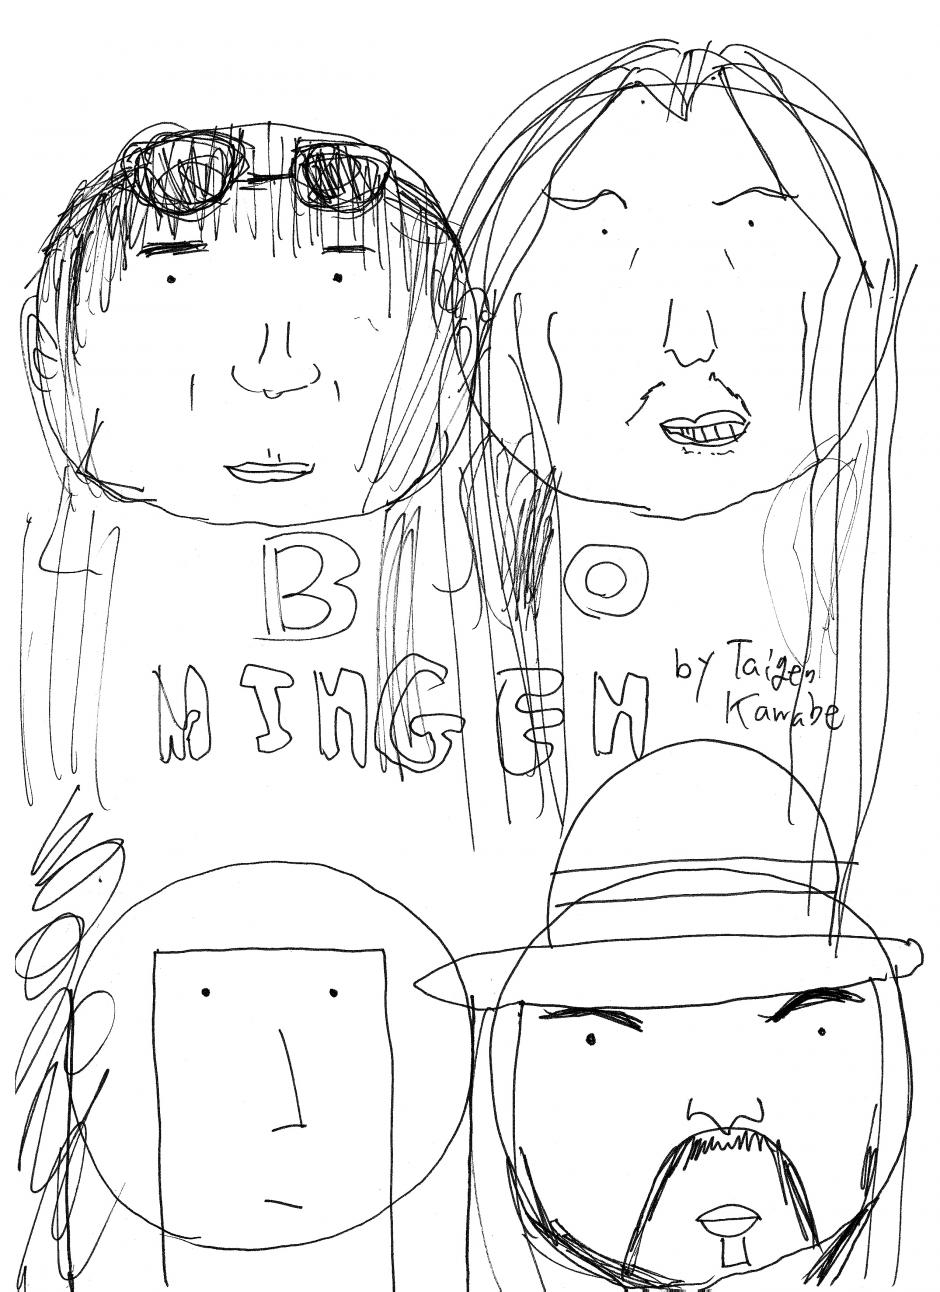 songbook piled by bad bonn venue the wire Angel Halo for Dogs bo ningen drawing by taigen kamabe